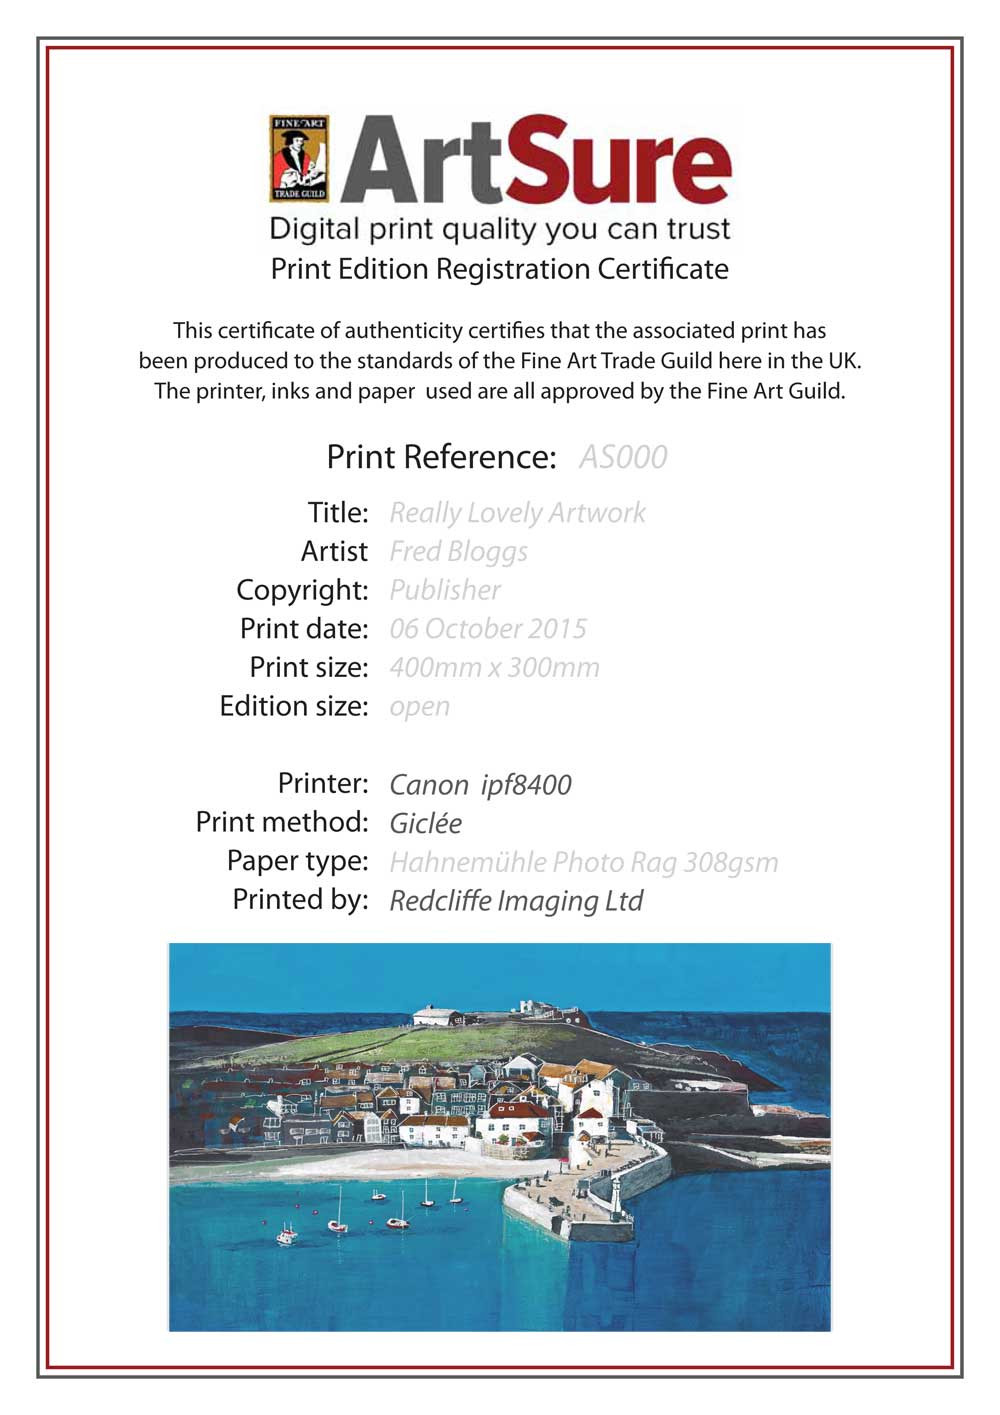 Limited edition prints your fine art giclee print editions produced by redcliffe imaging can also be registered with the artsure scheme this gives you and your customer yelopaper Images